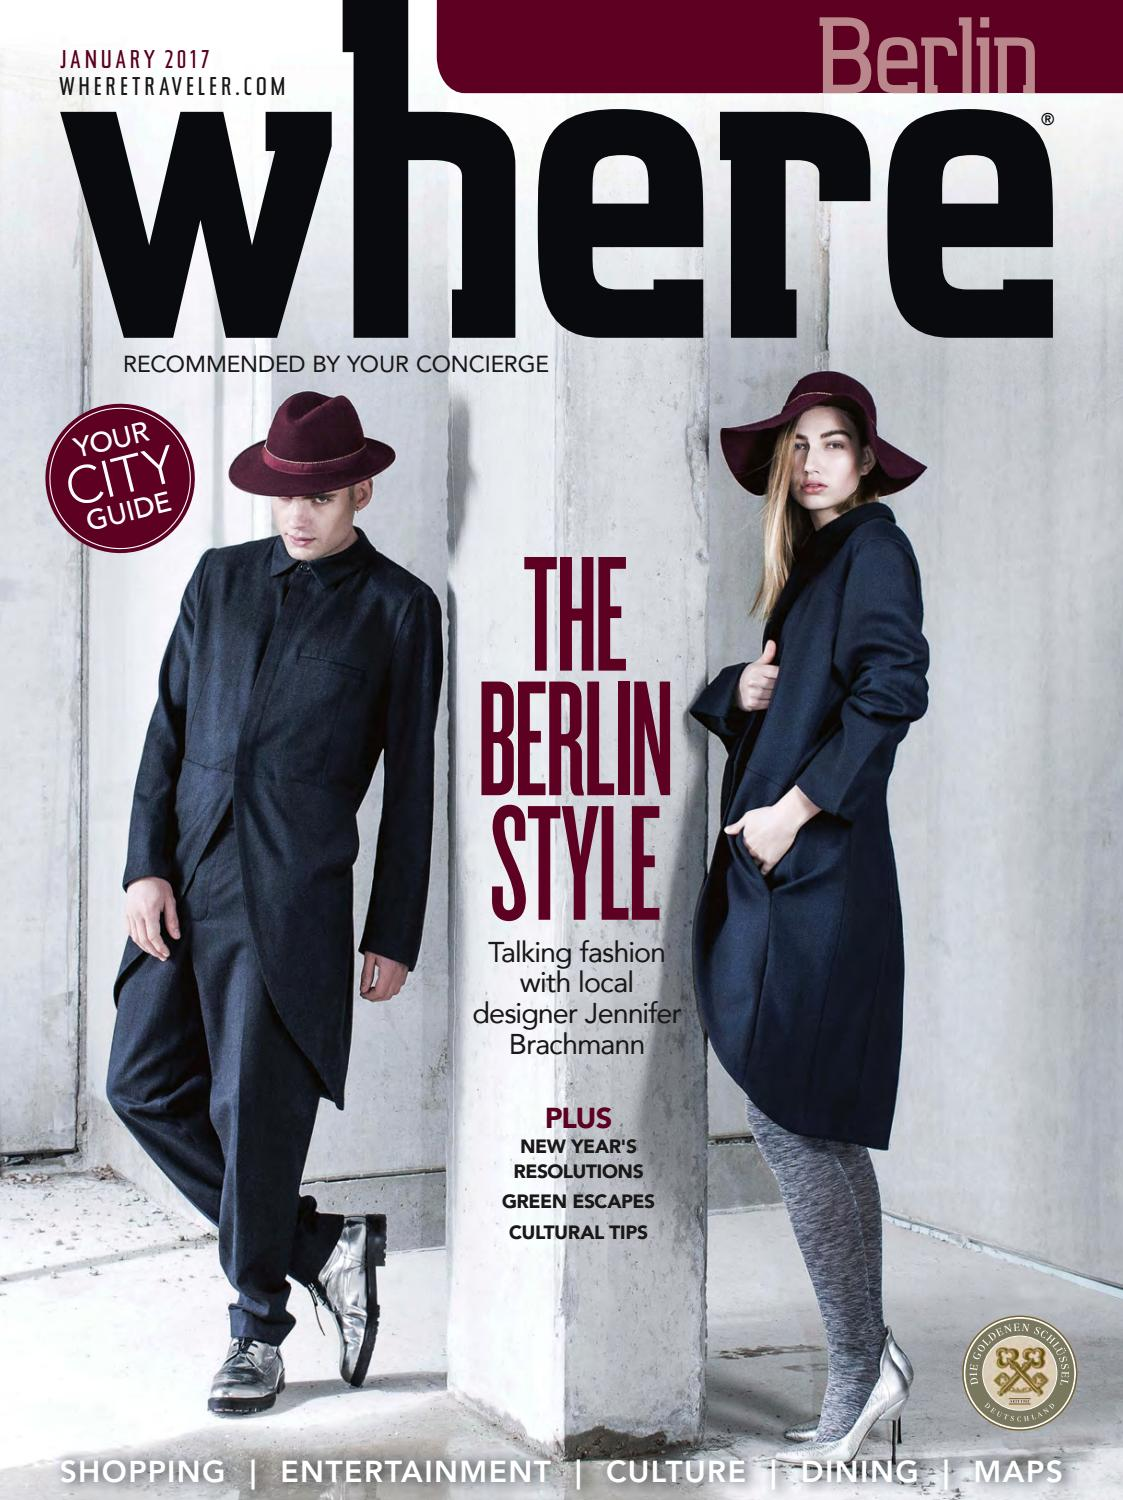 7d539dd554c Where Berlin January 2017 by Morris Media Network - issuu